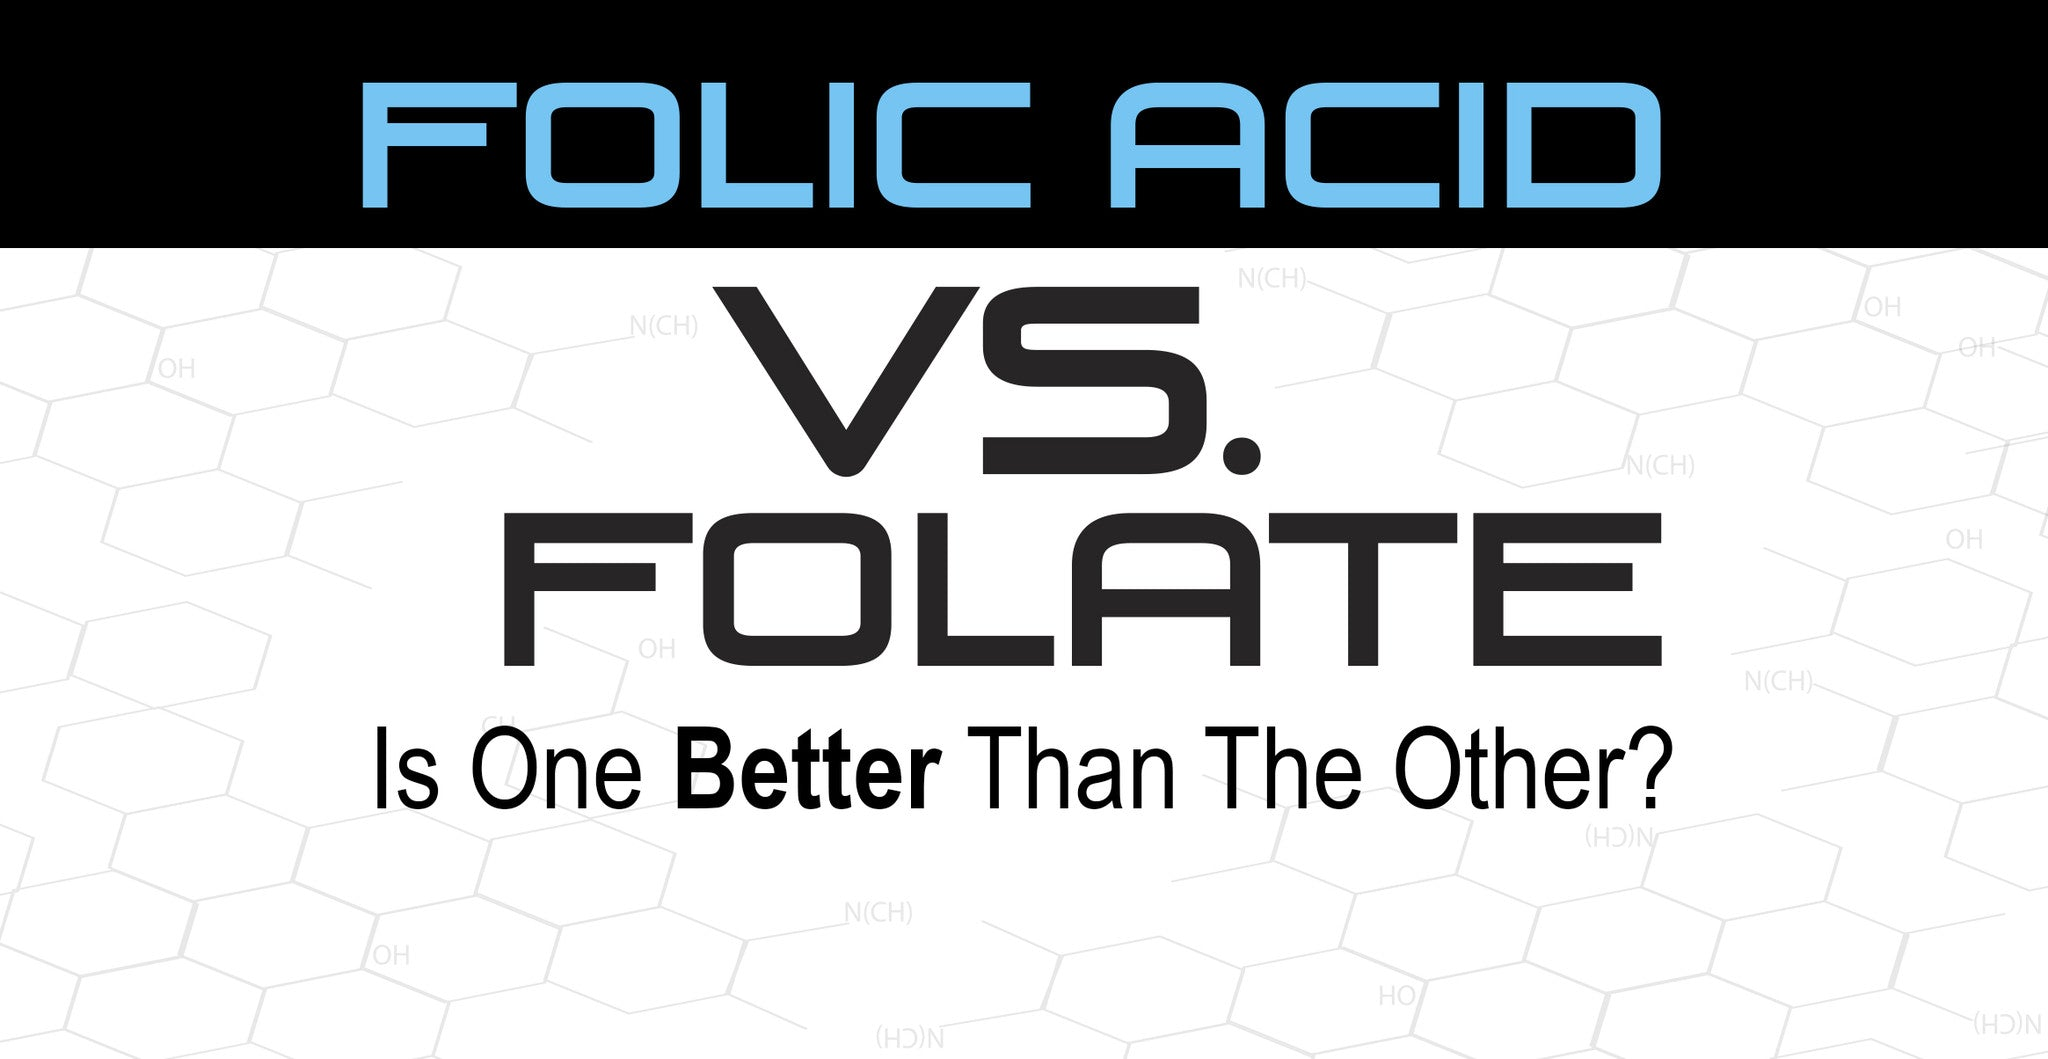 Folic acid Vs. Folate: is one better than the other?